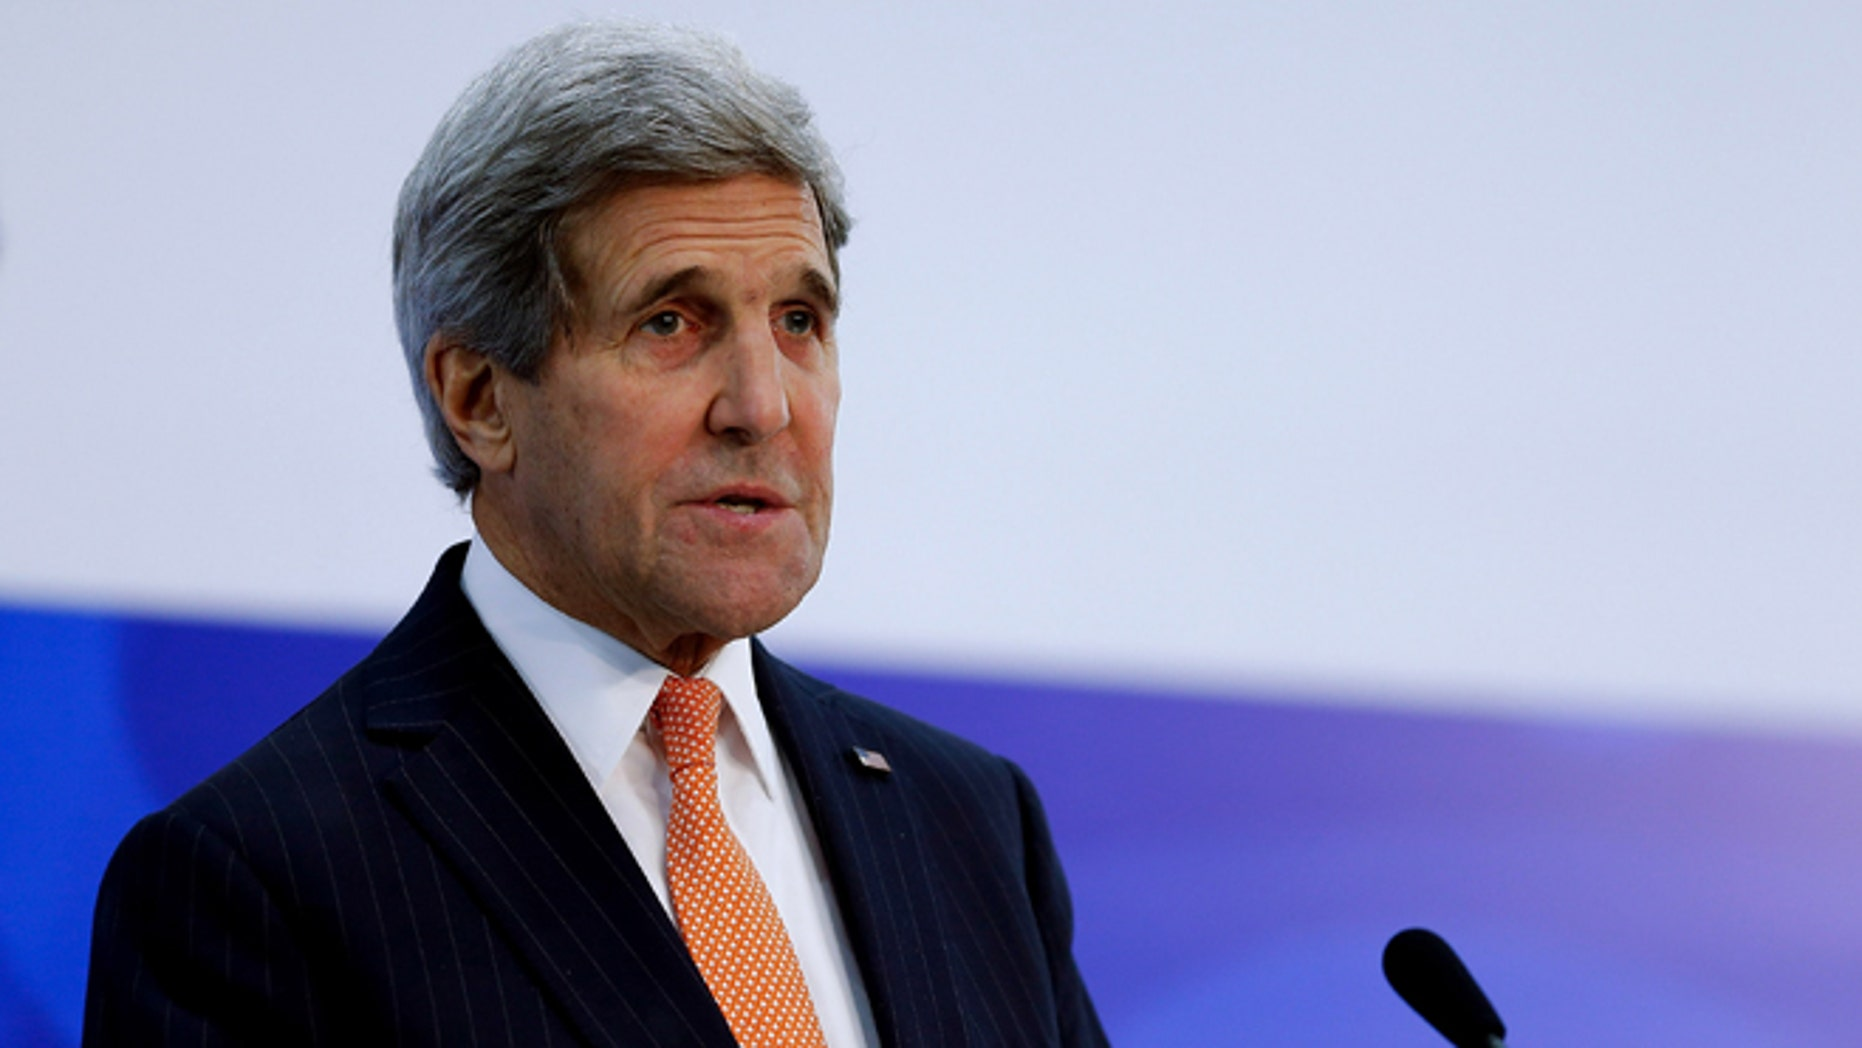 BEIJING, CHINA - NOVEMBER 08:  U.S. Secretary of State John Kerry speaks during a press conference during the Asia-Pacific Economic Cooperation (APEC) Summit at the China National Convention Center on November 8, 2014, in Beijing, China. From November 7-11, the APEC 2014 Summit will bring together leaders and senior administration from 21 countries, with U.S. President Barack Obama and Russian President Vladimir Putin expected to attend.  (Photo by Lintao Zhang/Getty Images)